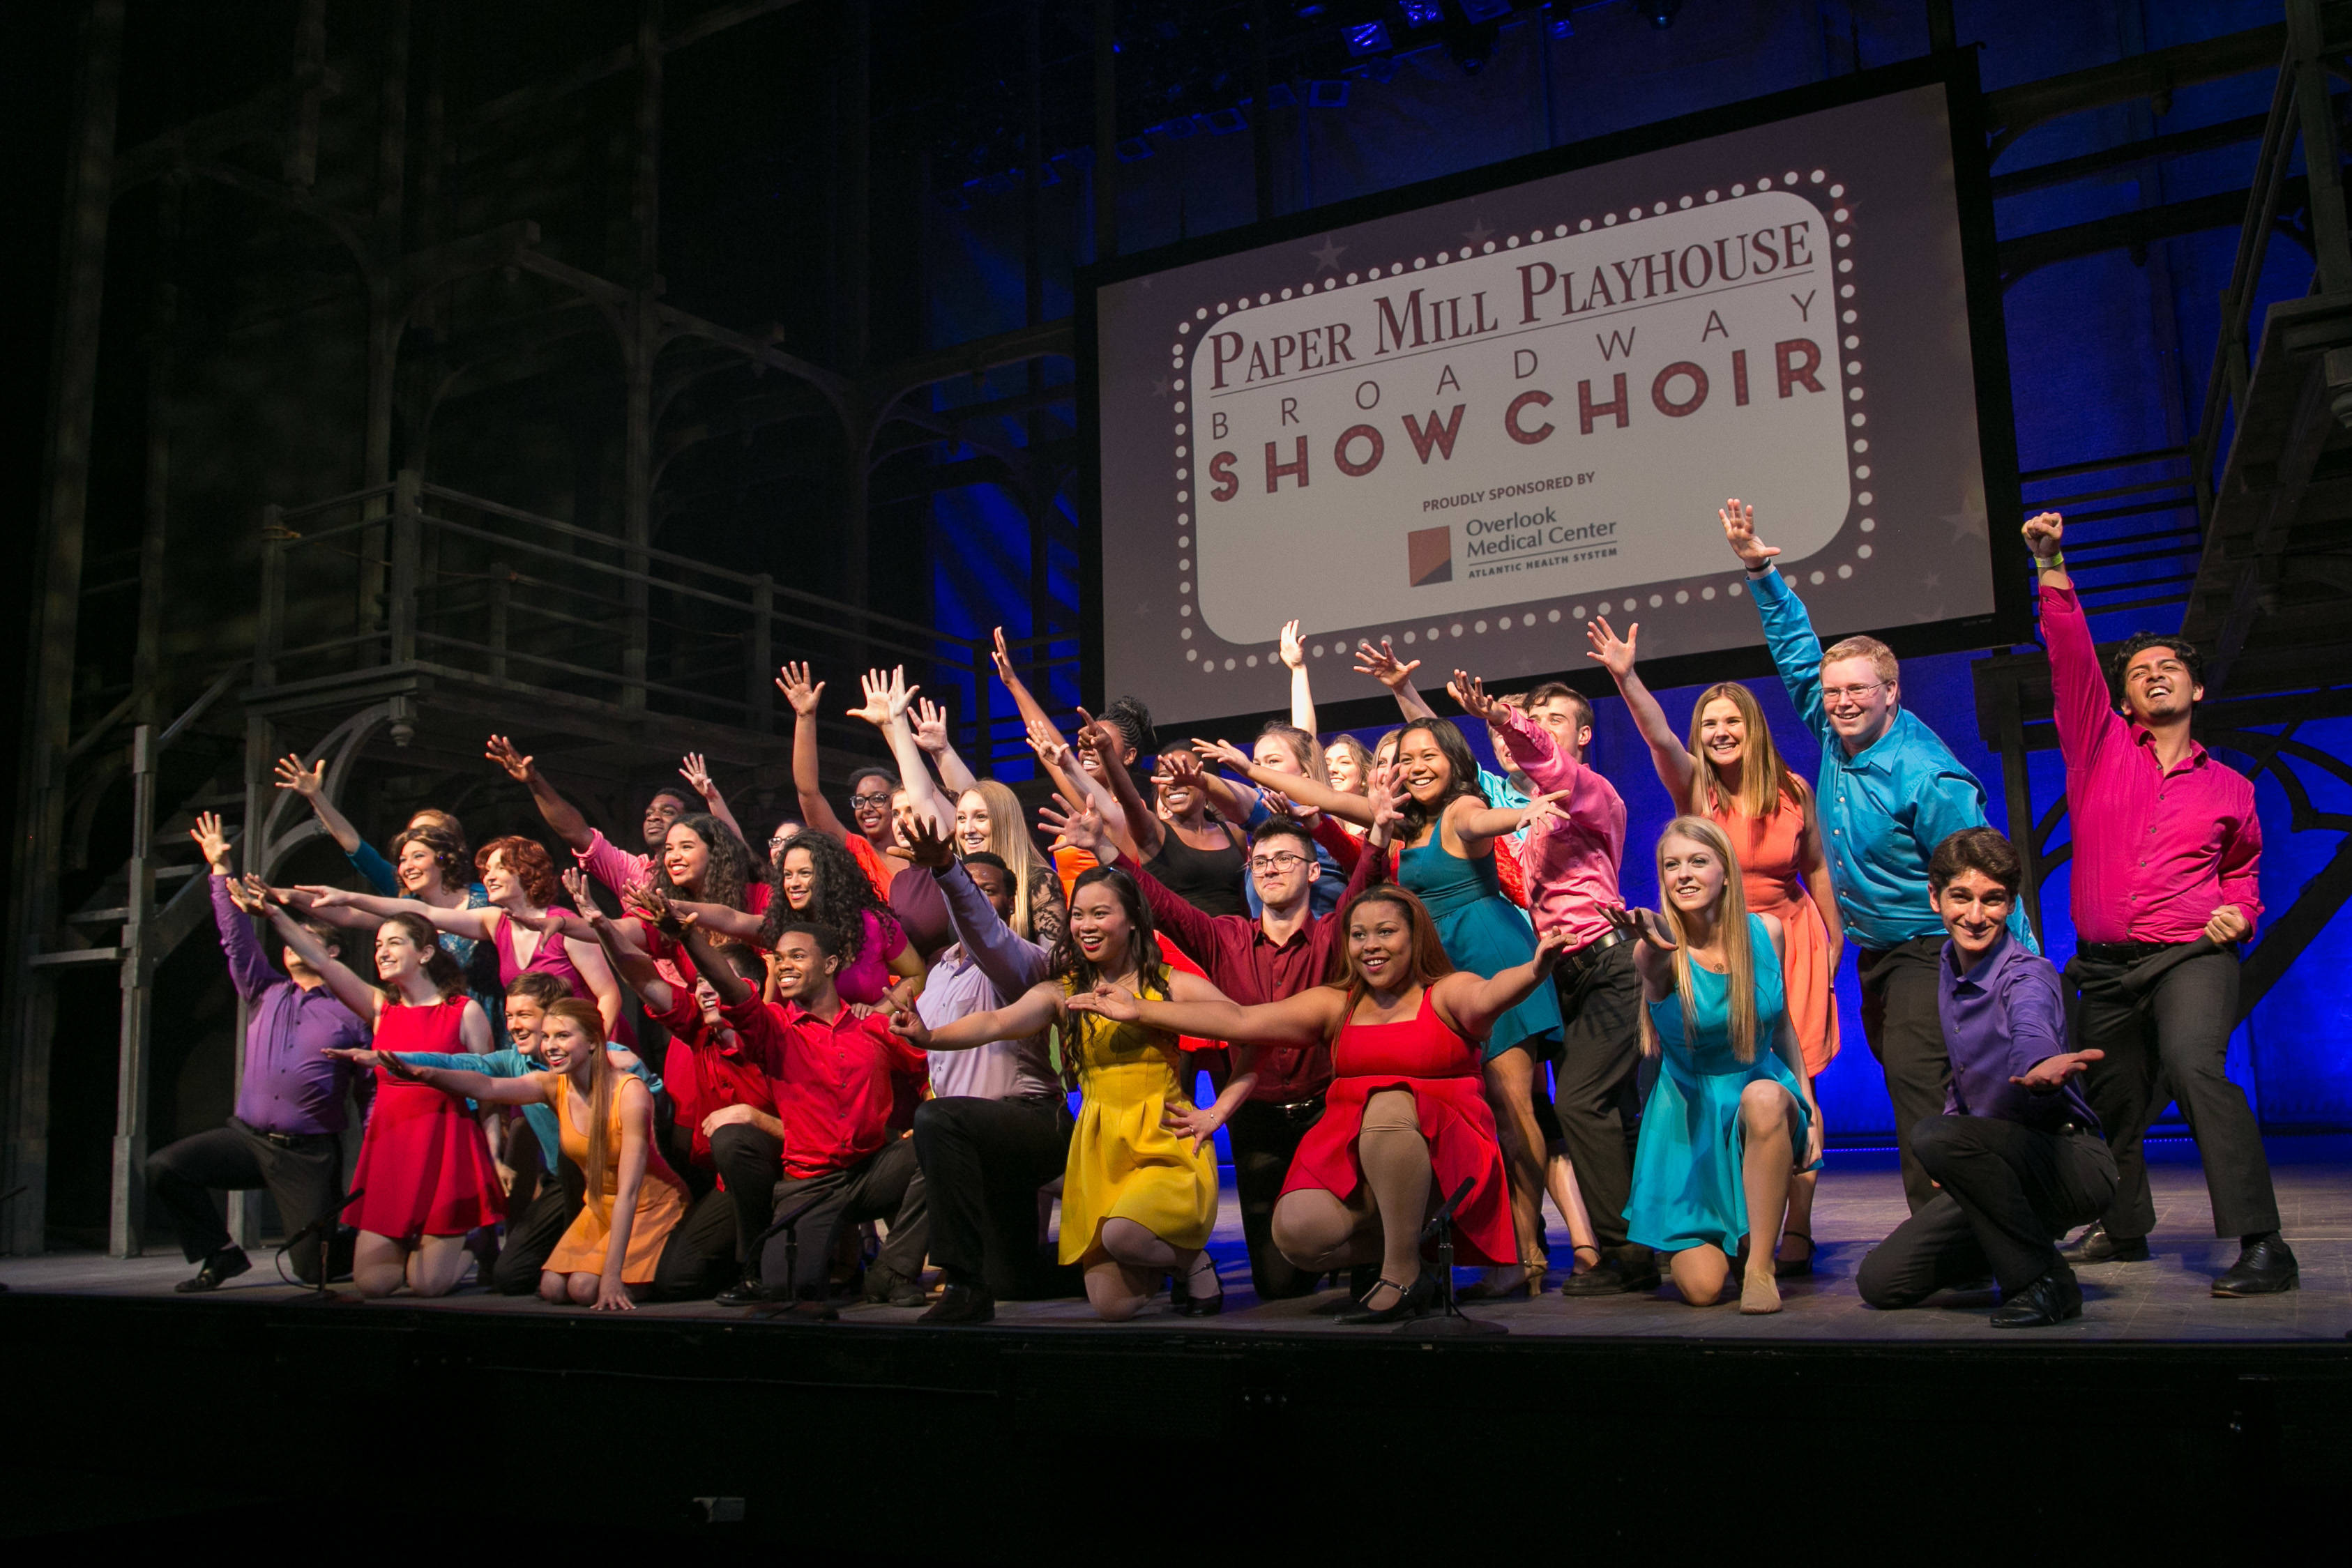 paper mill playhouse nj Find paper mill playhouse in millburn with address, phone number from yahoo us local includes paper mill playhouse reviews, maps & directions to paper mill playhouse in millburn and more from yahoo us local.